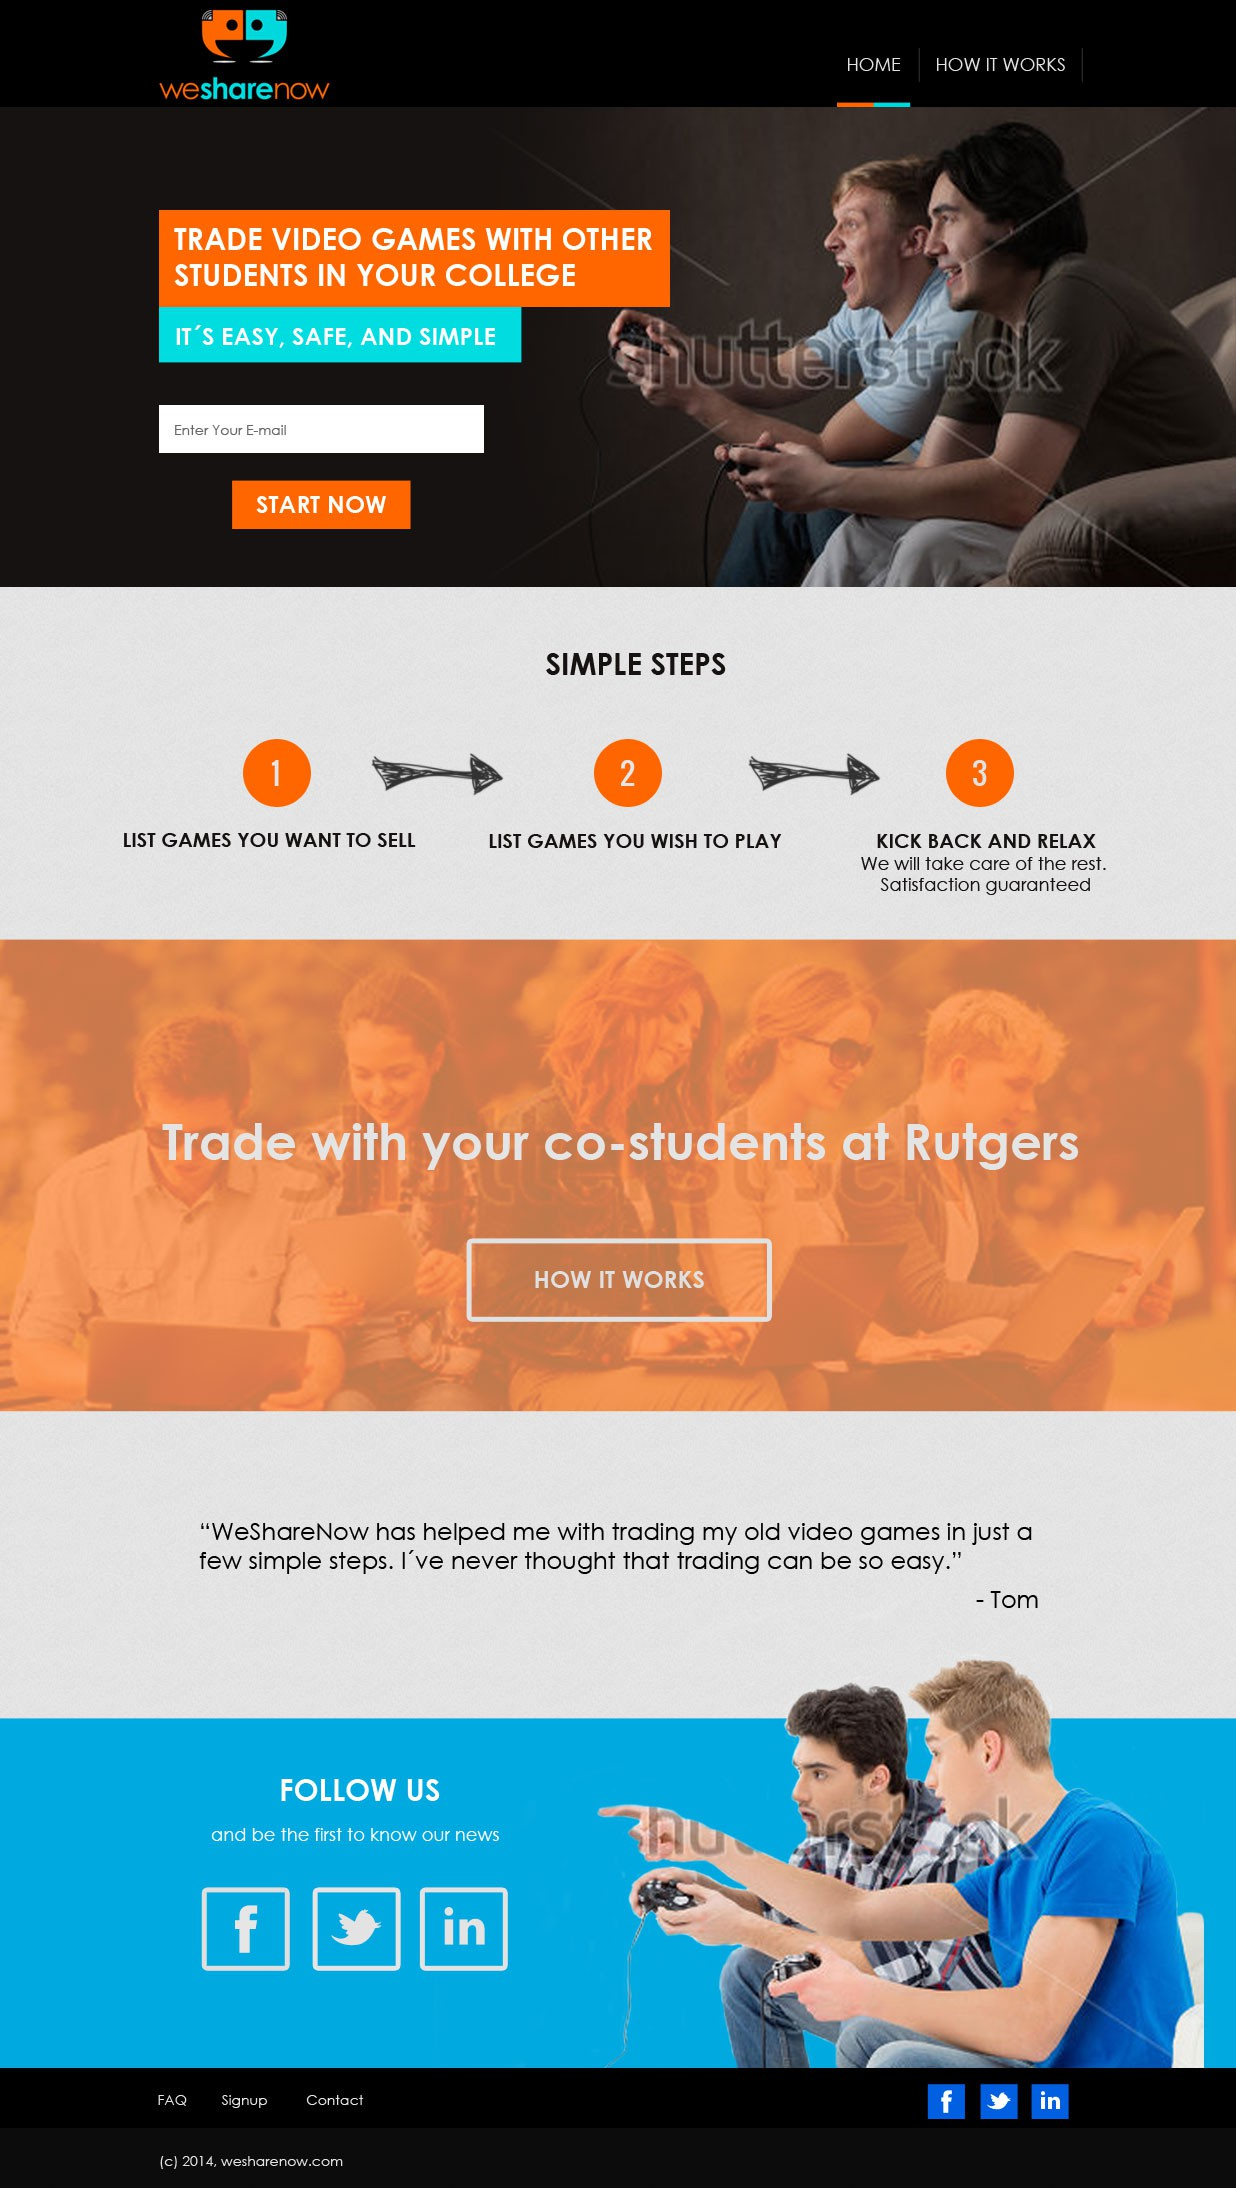 Create a stunning landing page for college students to trade their video games within their college